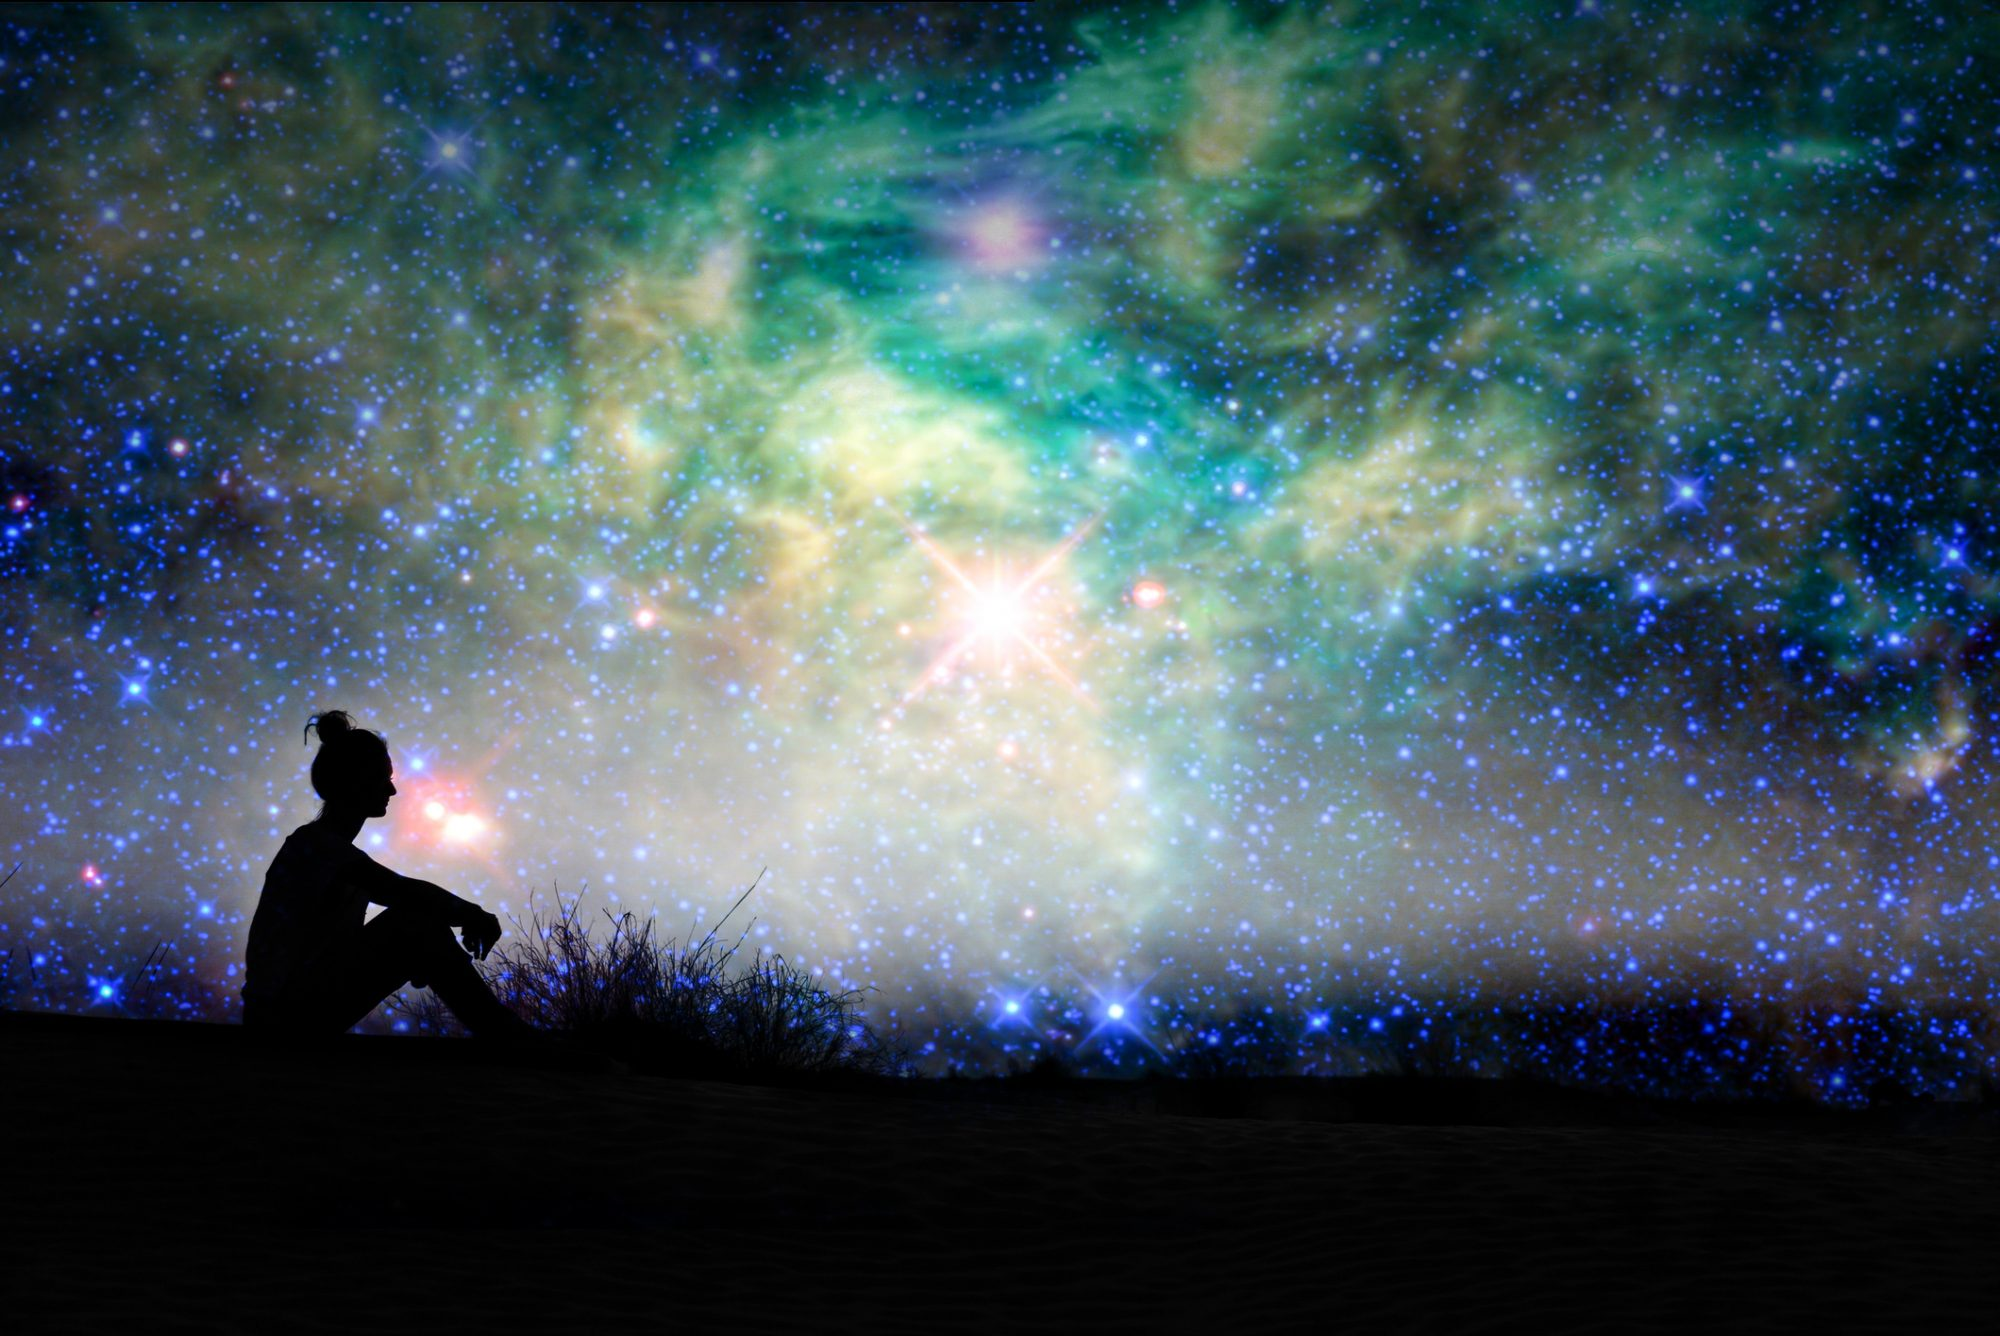 silhouette of a woman sitting under the stars